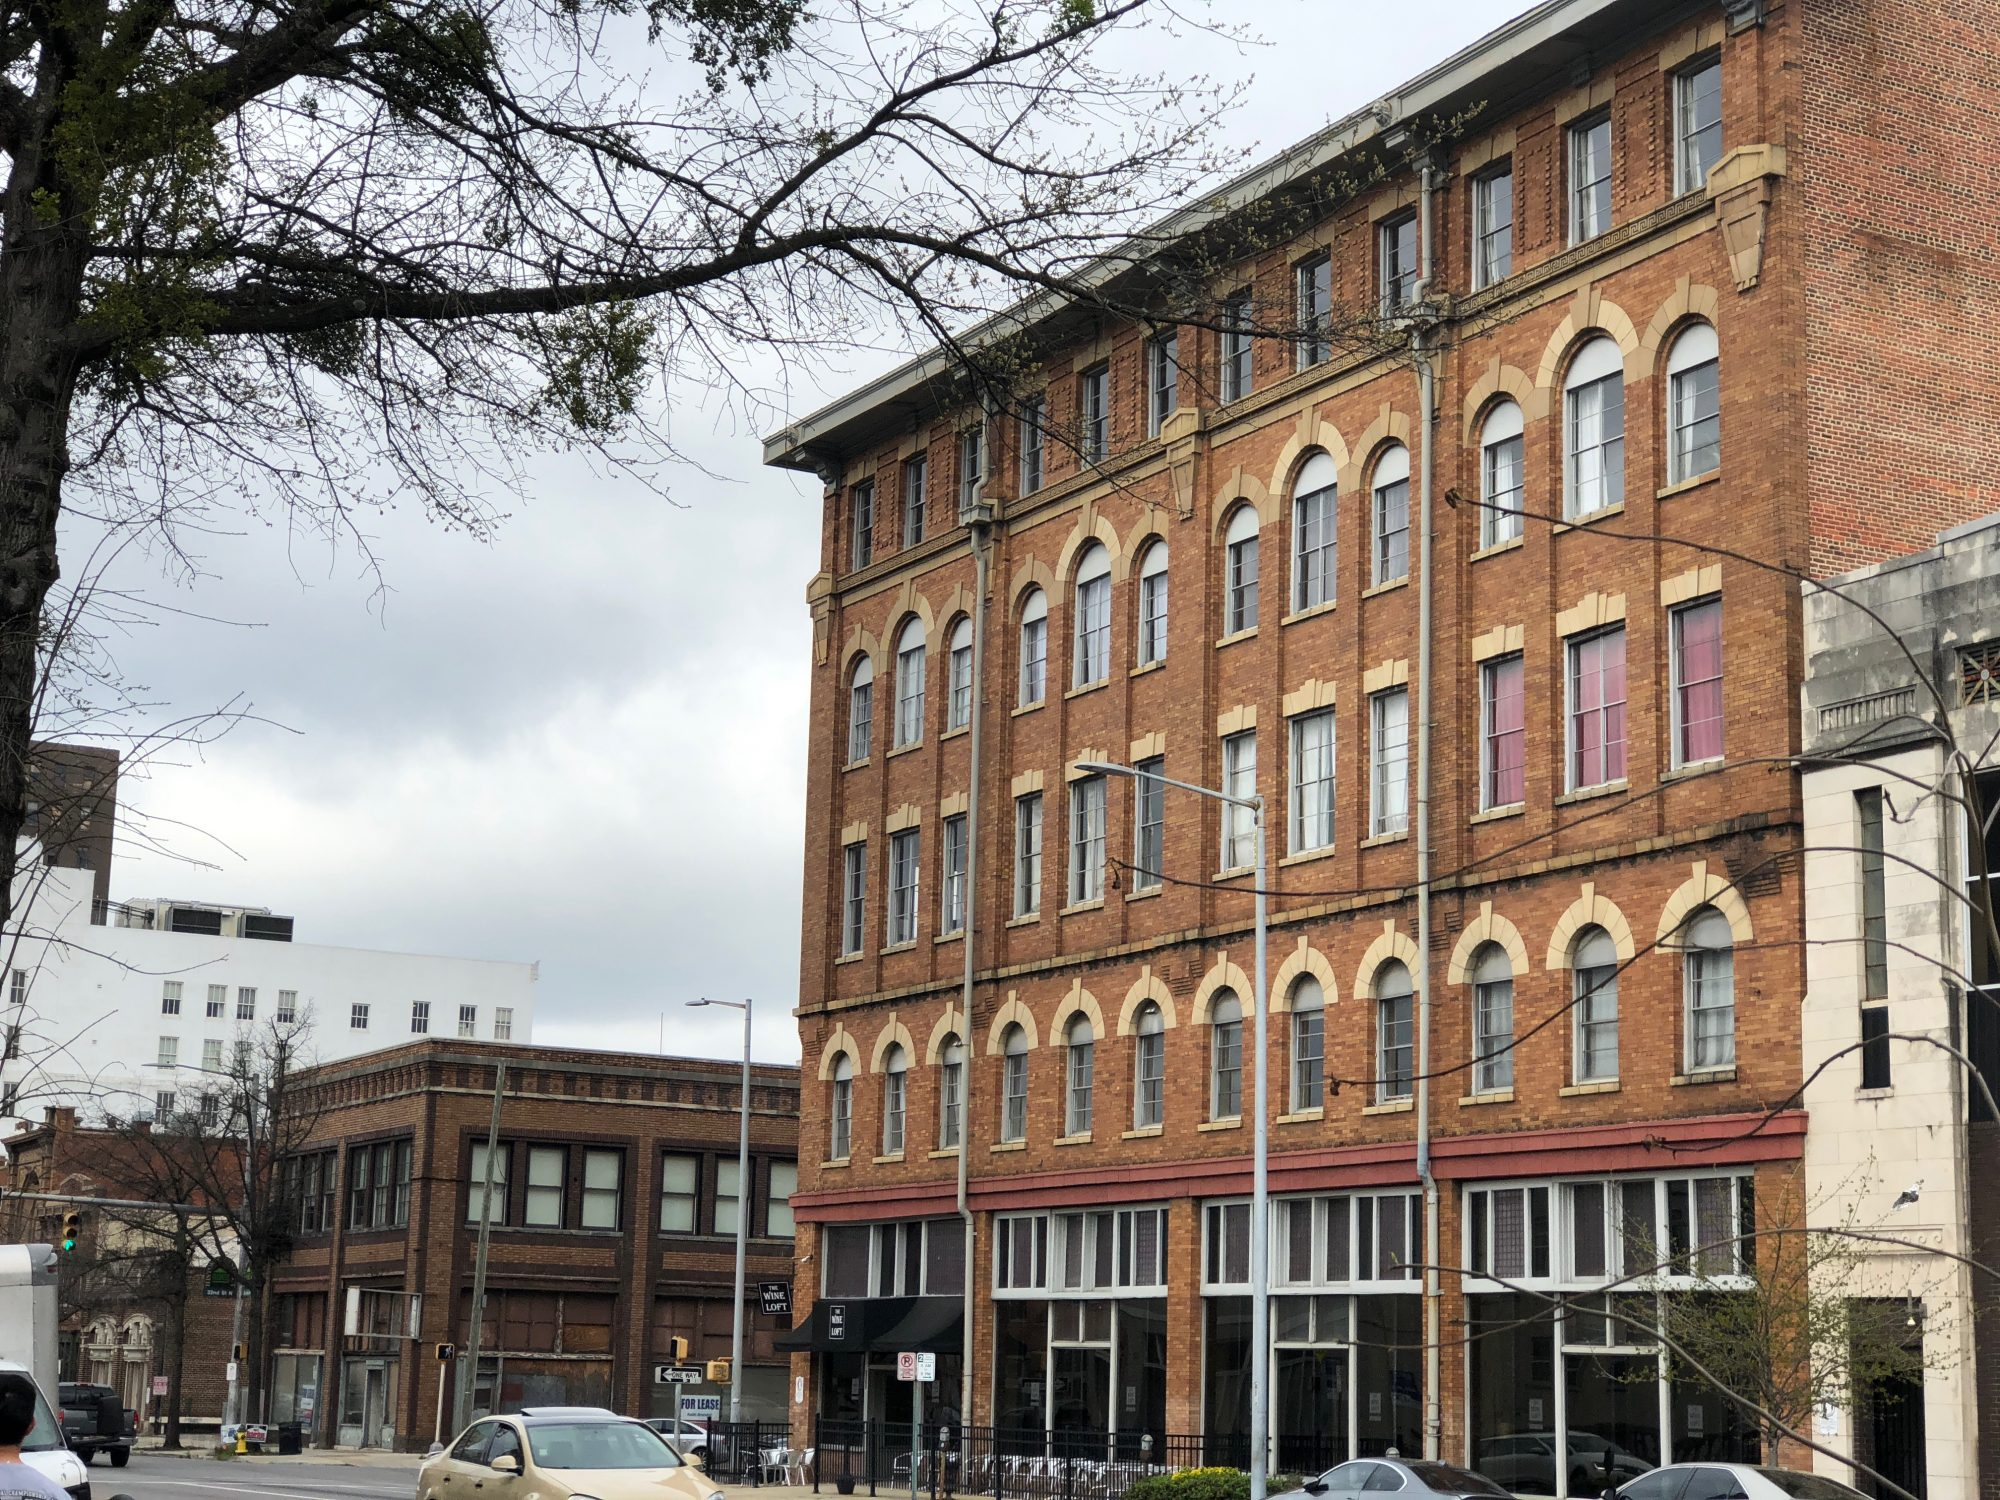 Alabama offers Spring walking tours in cities and towns across the state